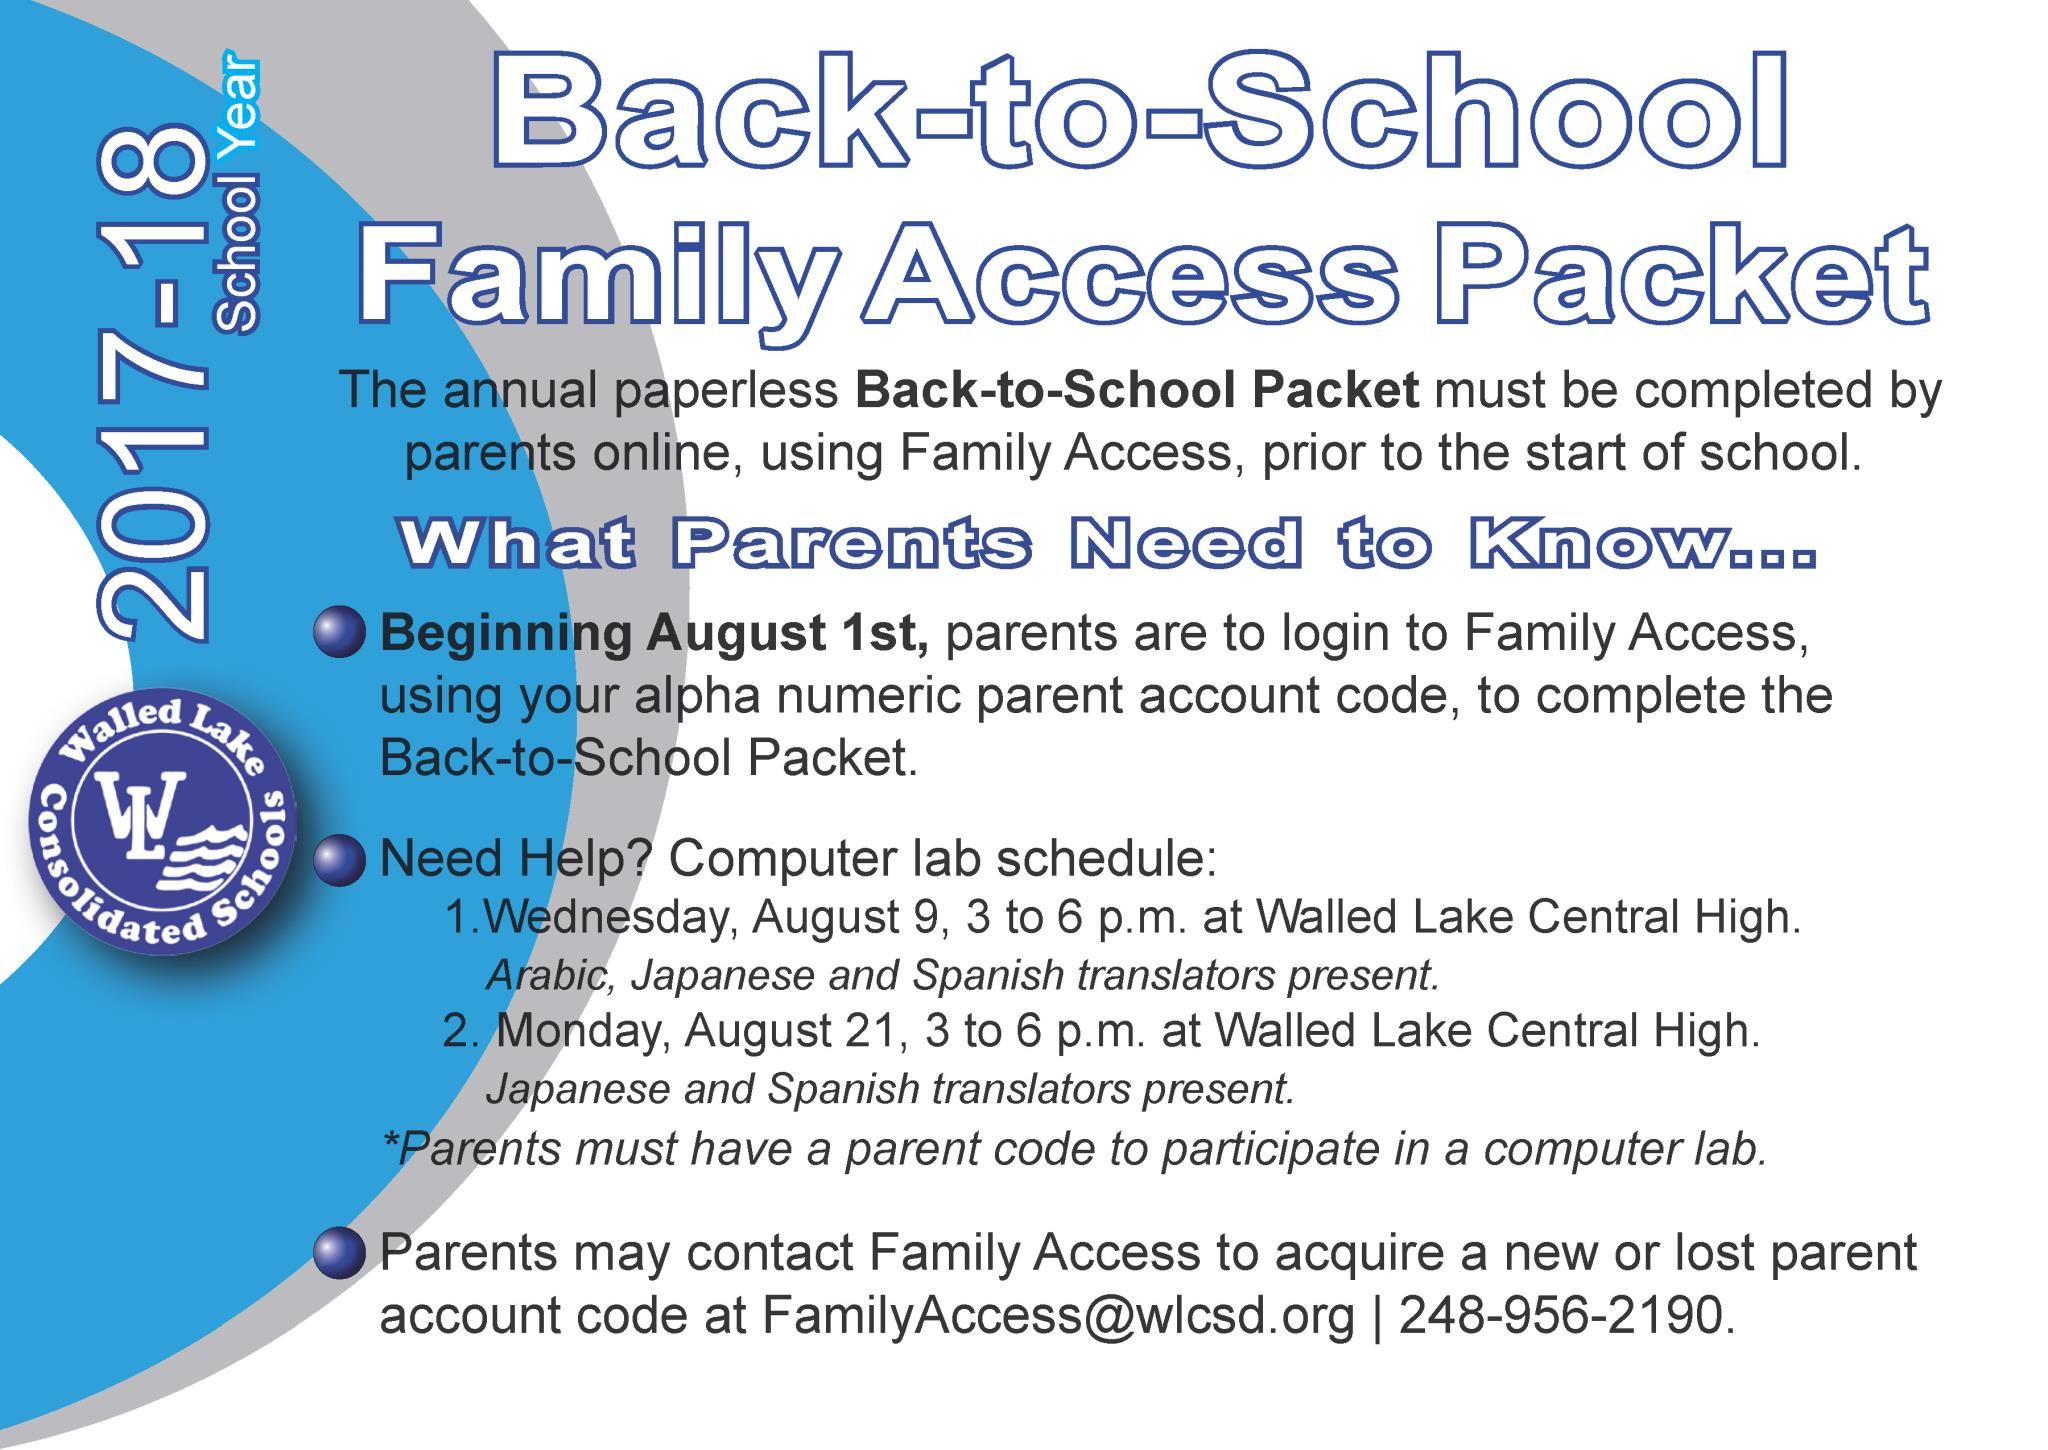 Back to School Family Access Packet flyer